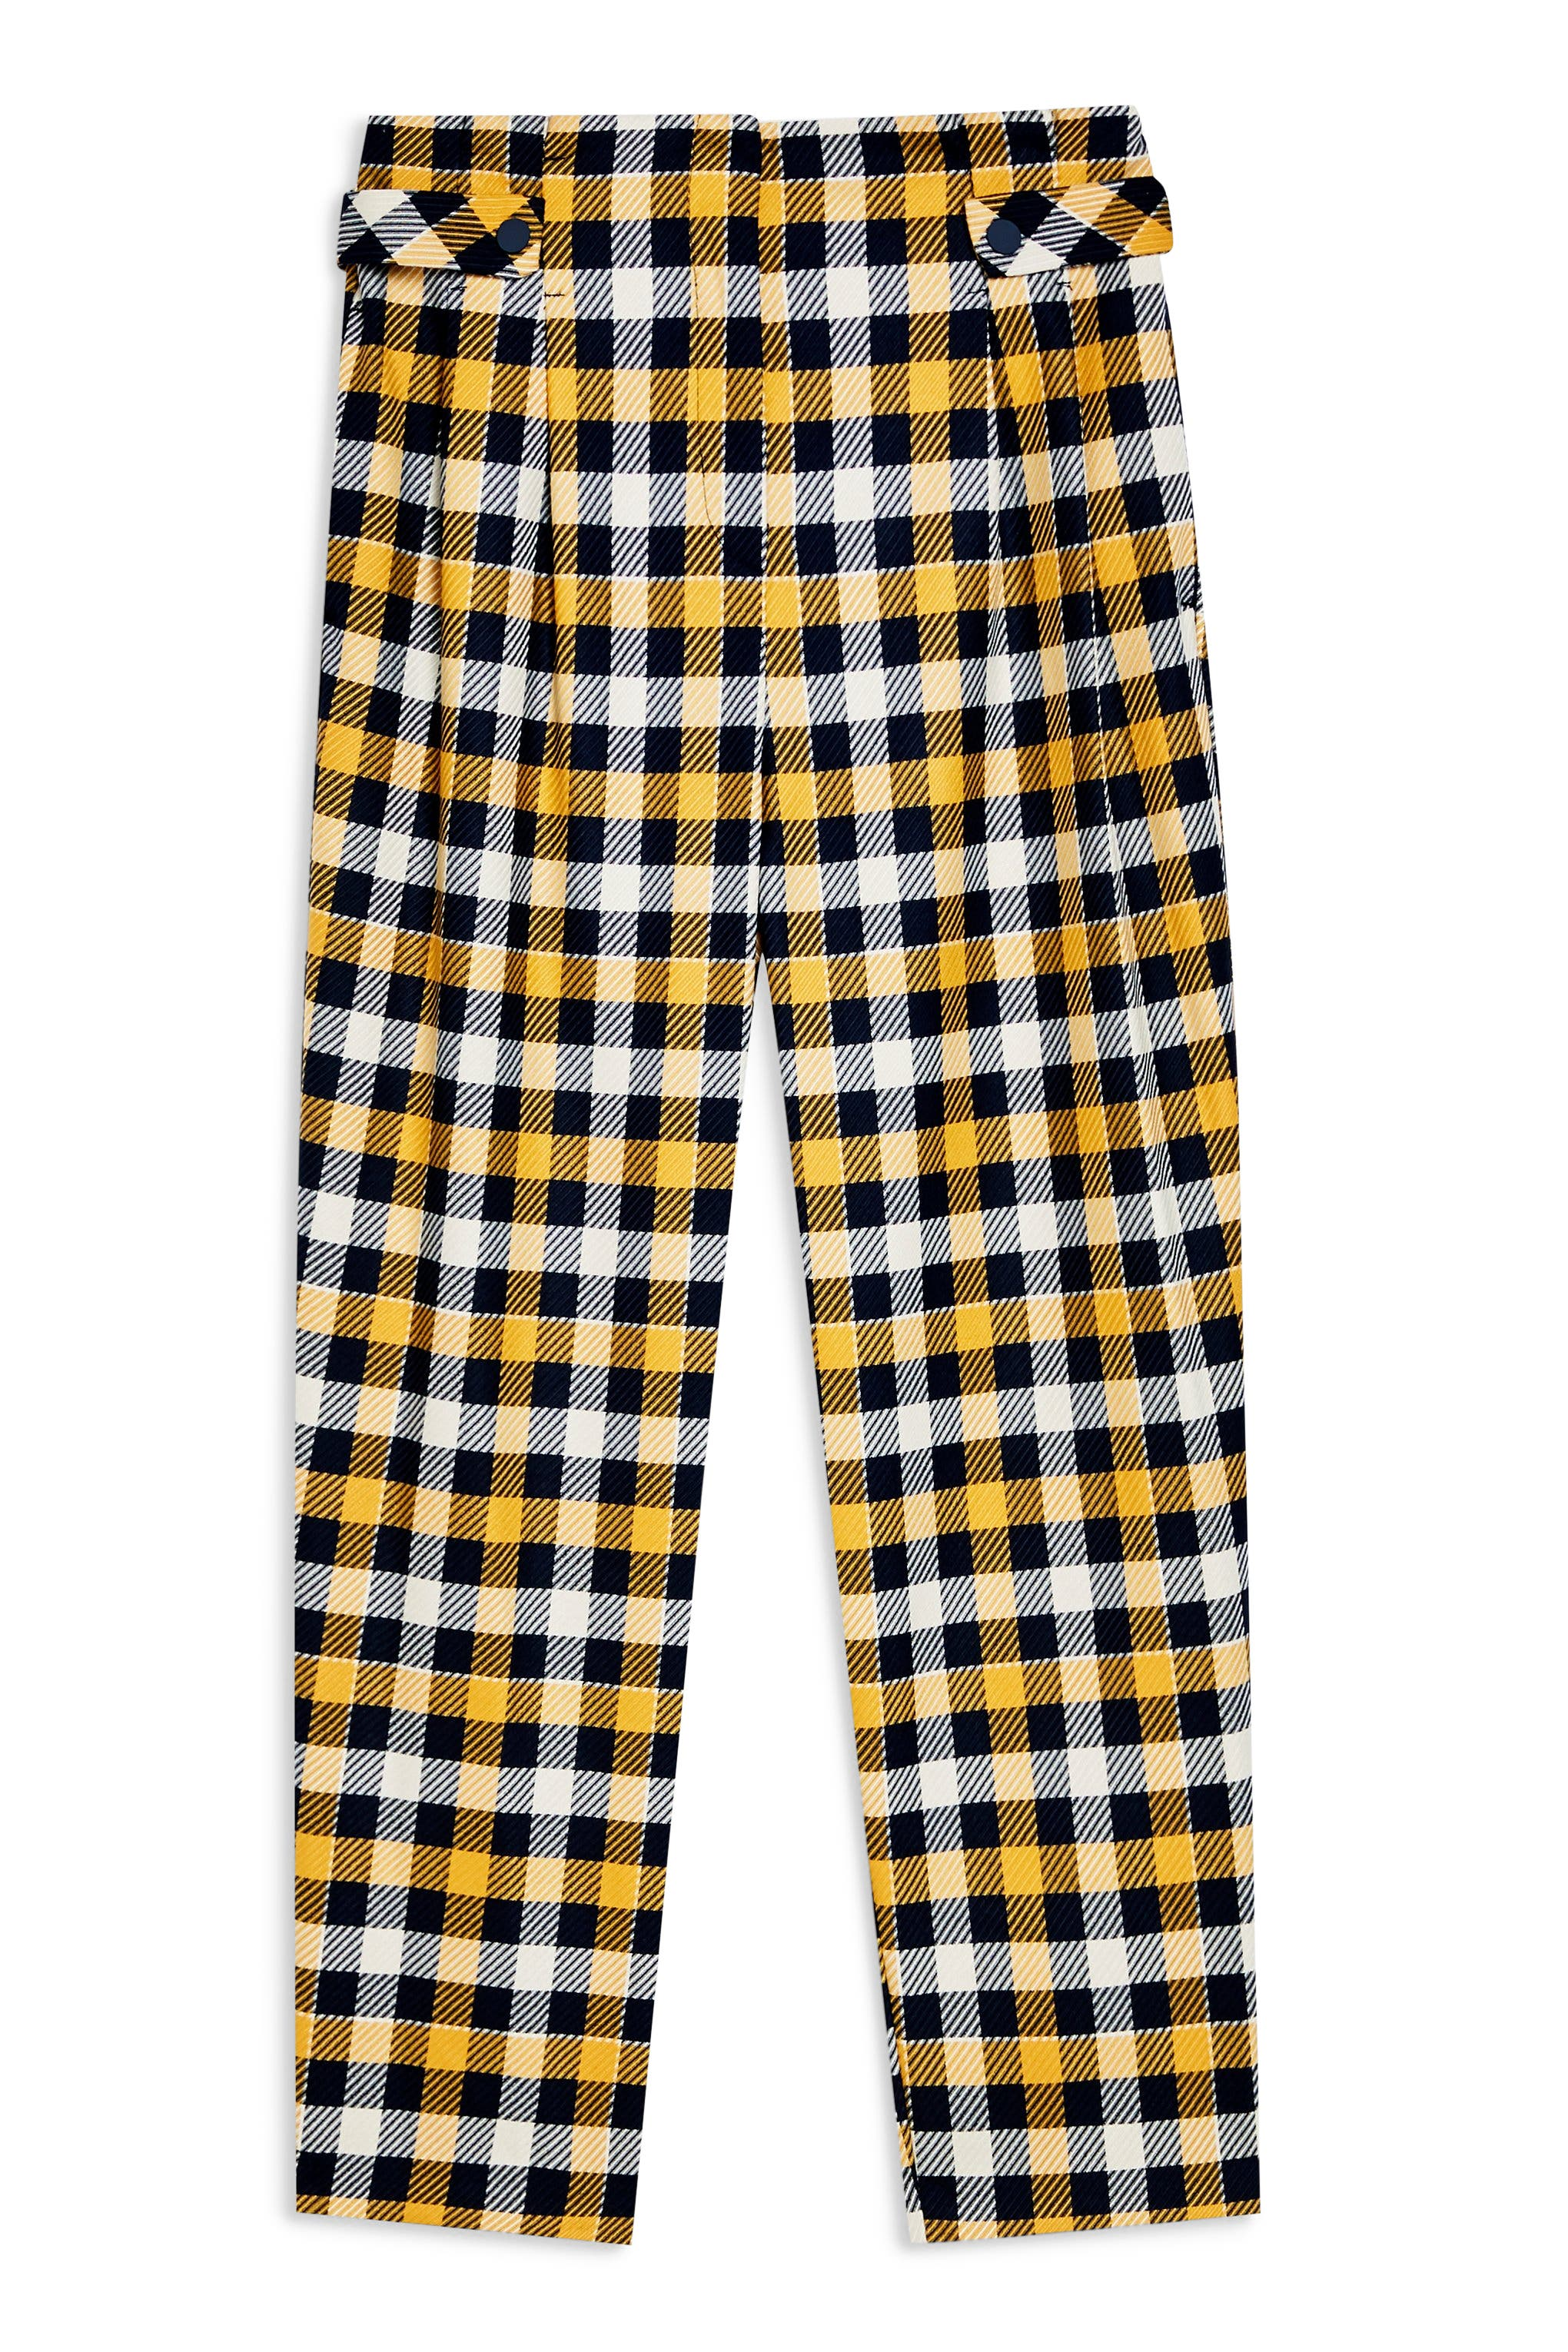 TOPSHOP, Tara Check Twill Crop Trousers, Alternate thumbnail 5, color, YELLOW MULTI